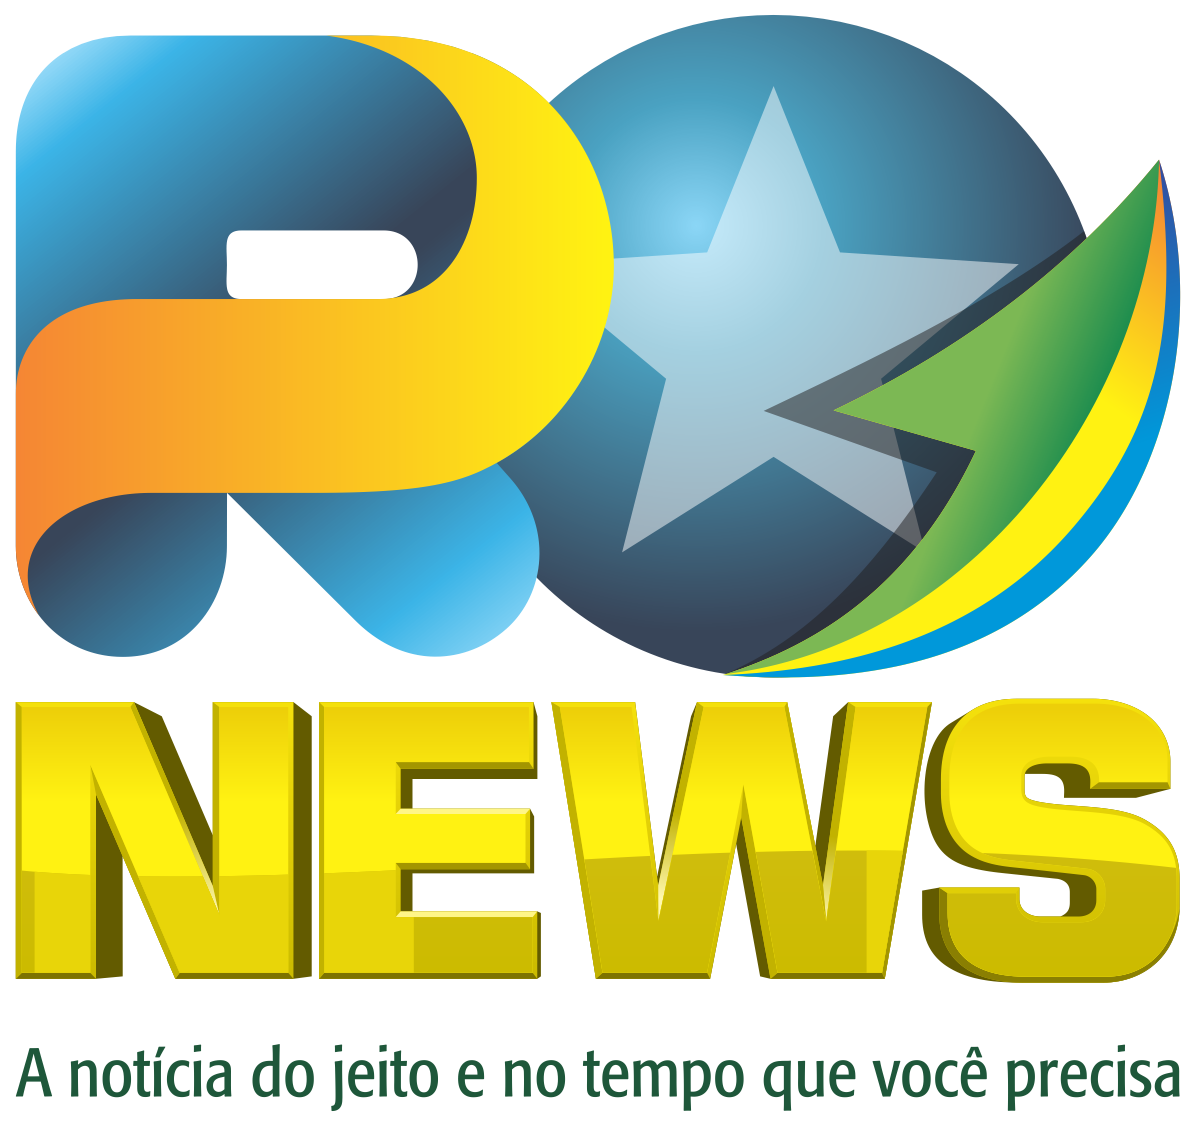 ro1news